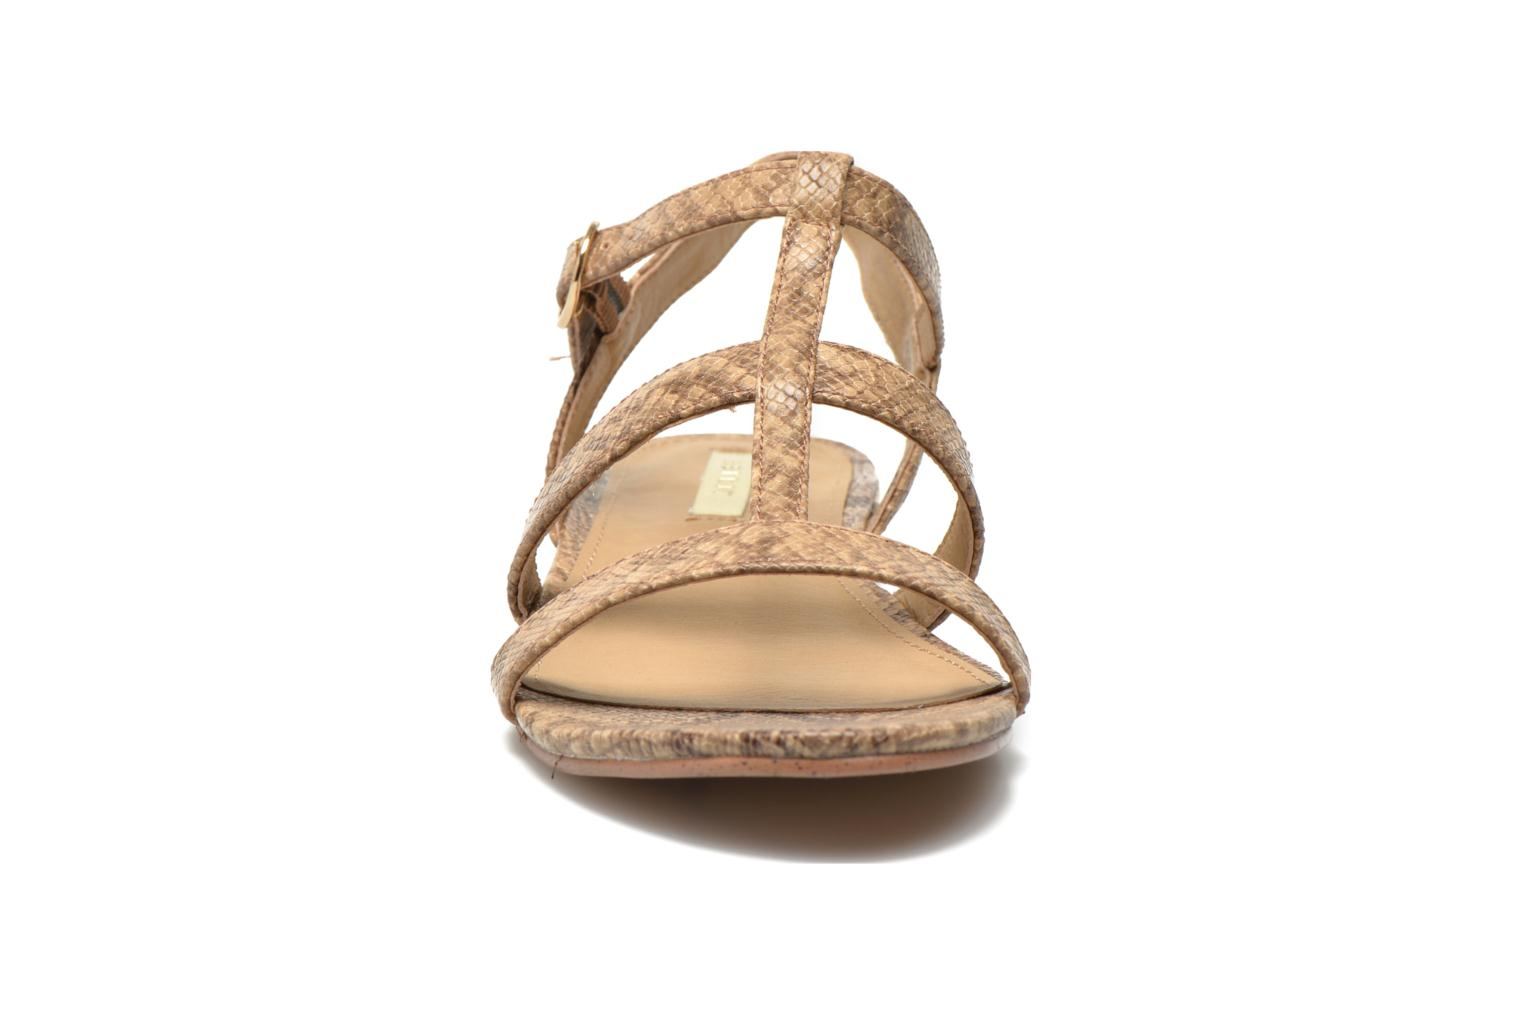 Aely Sandal Toffee